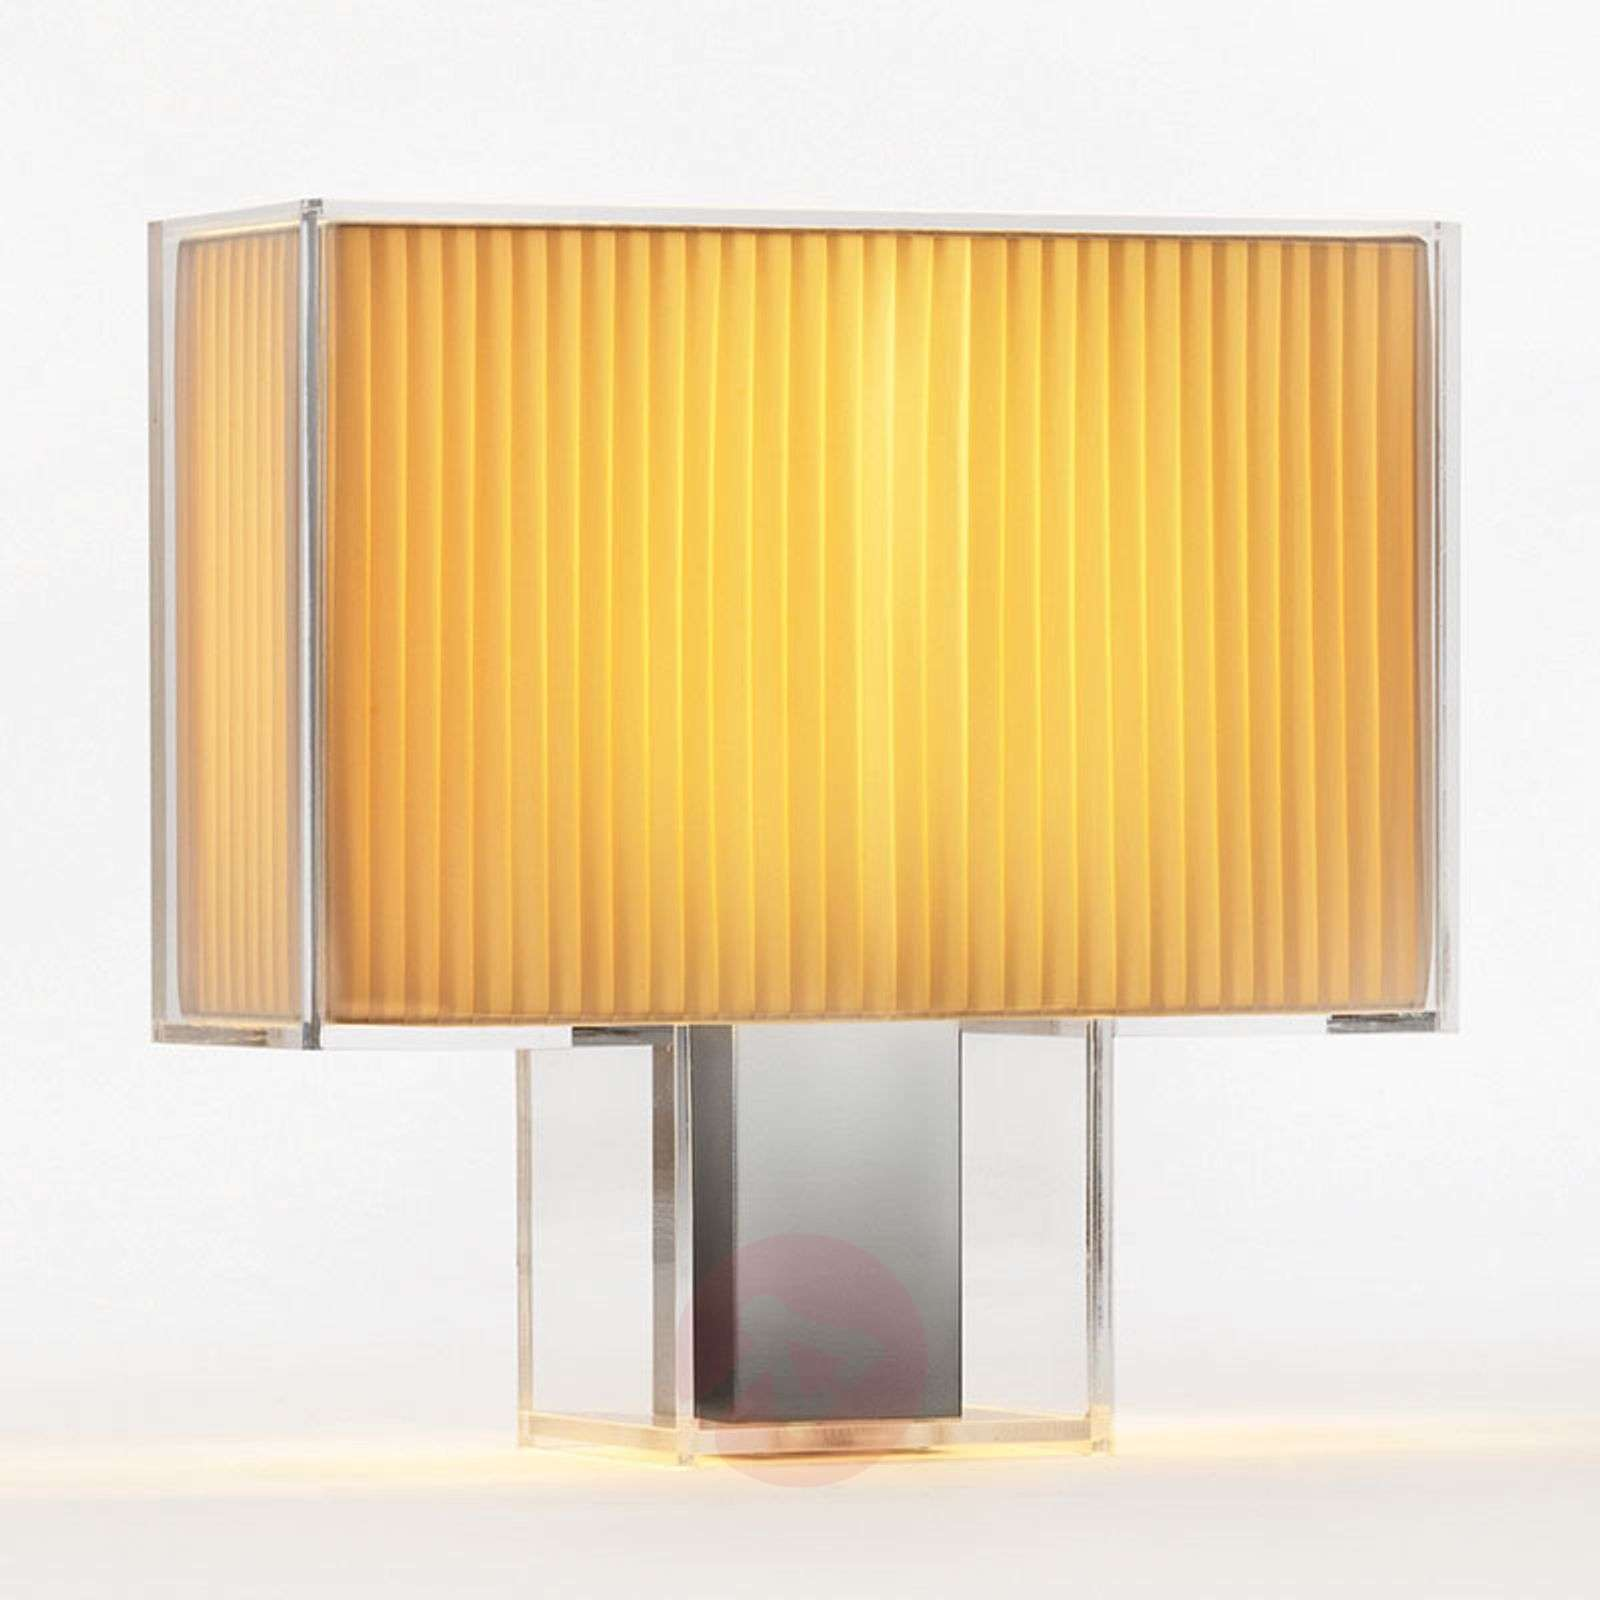 Designer Table Lamp Tat 236 With Pleated Lampshade Lights